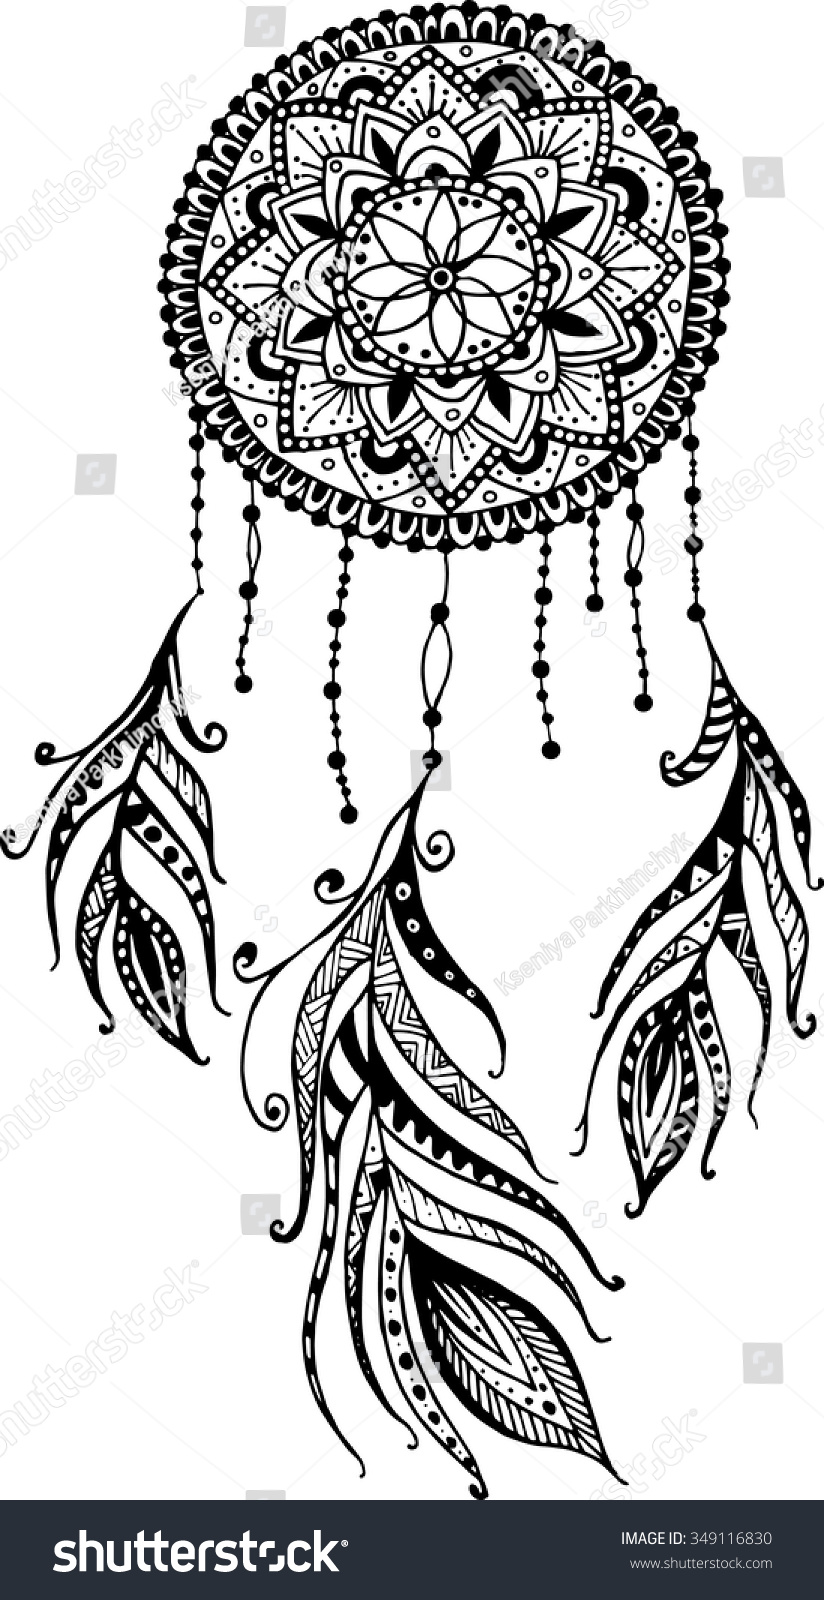 Handdrawn Mandala Ink Dreamcatcher Feathers Ethnic Stock